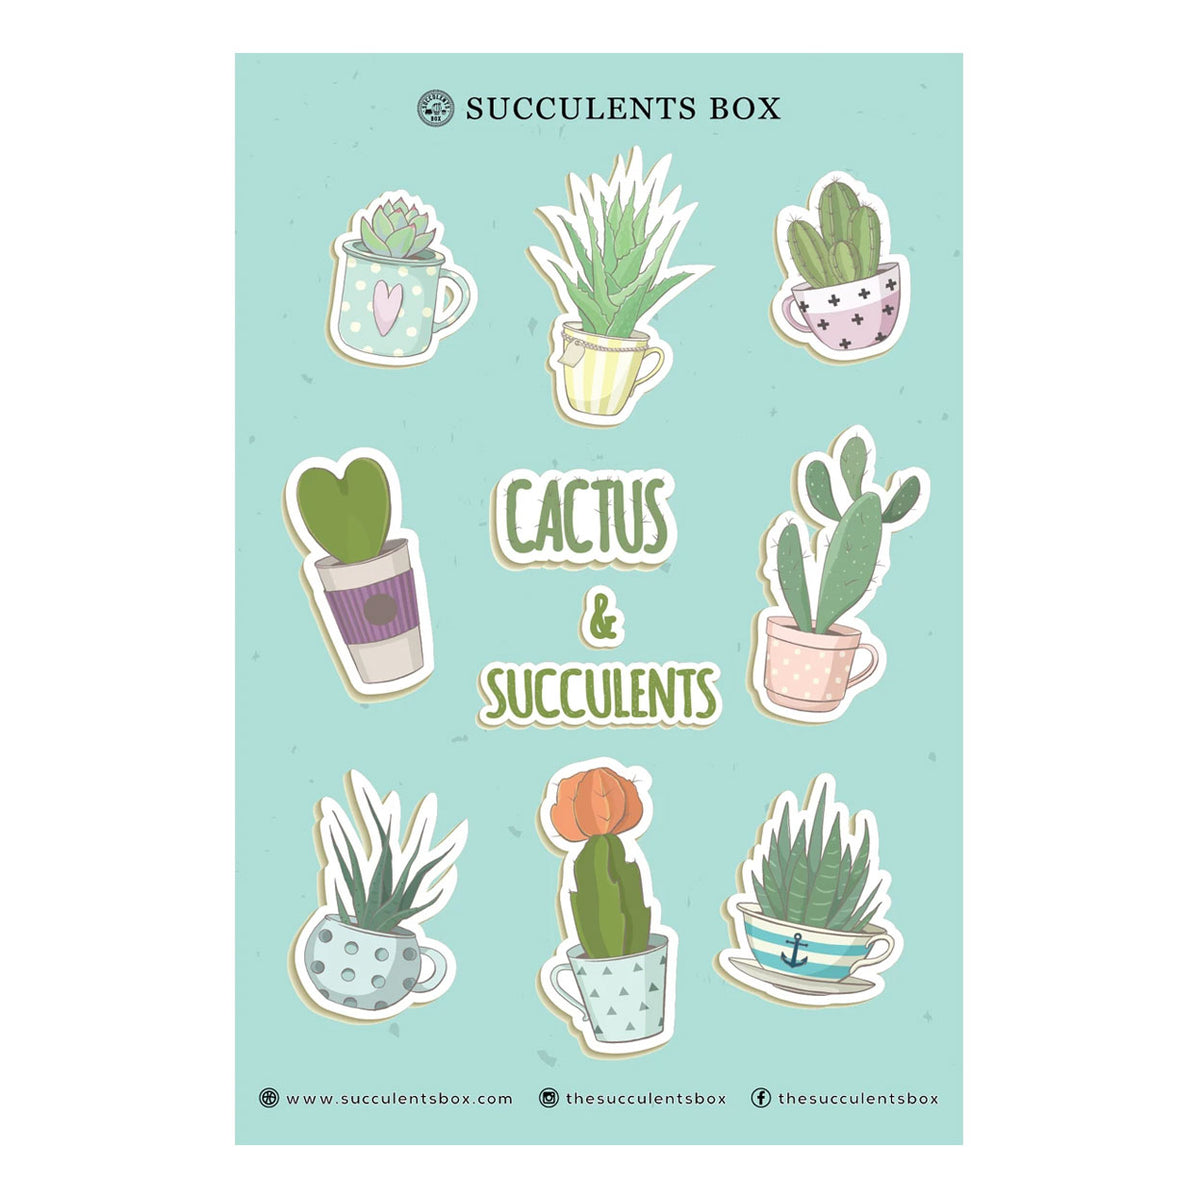 Cactus And Succulents Sticker Cute Potted Succulent Sticker Succulents Box